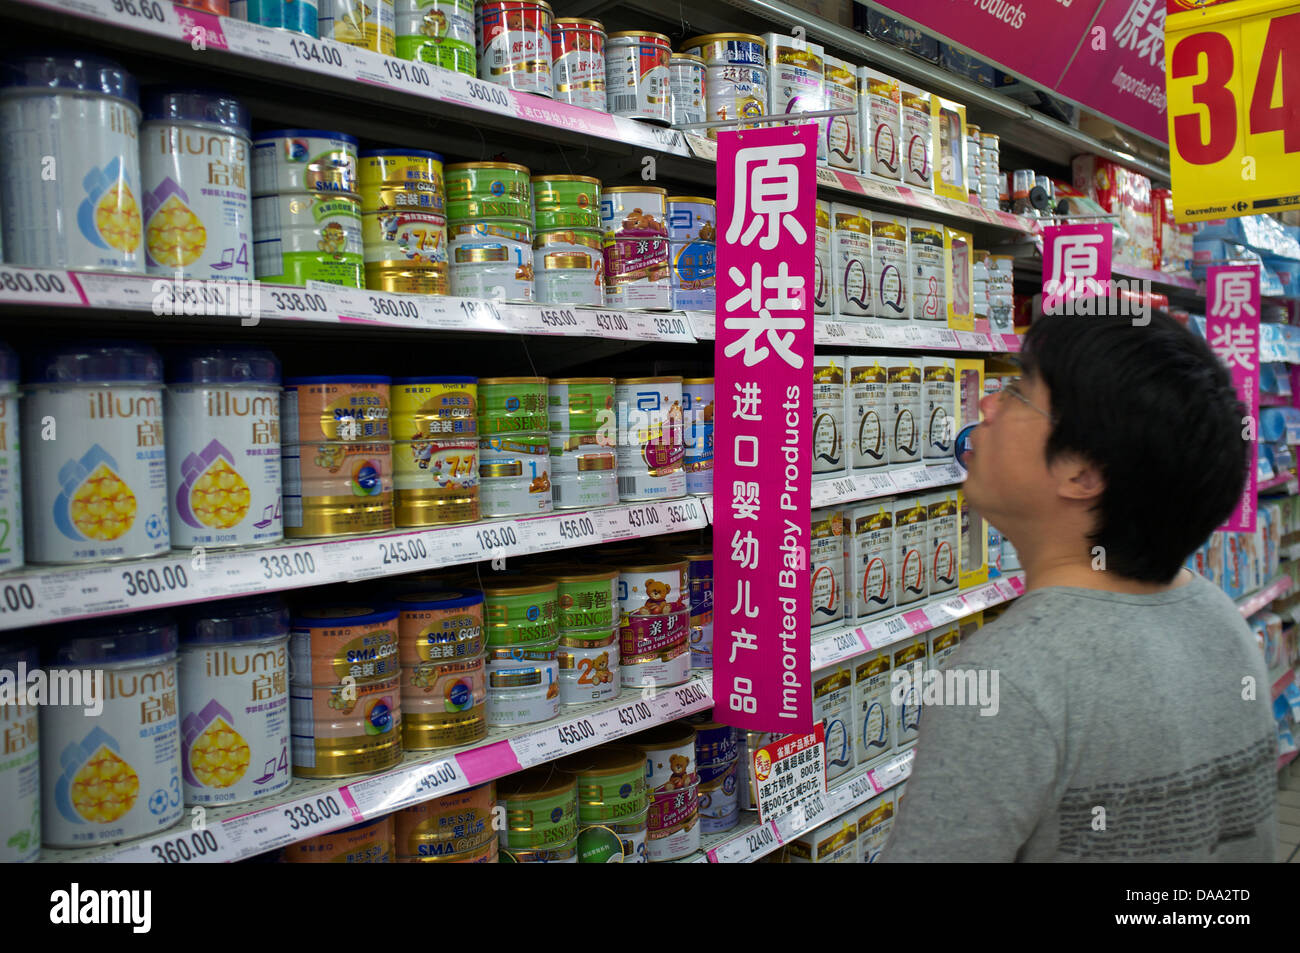 A man looks at imported infant formula baby milk powder in a supermarket in Beijing, China. 09-Jul-2013 - Stock Image